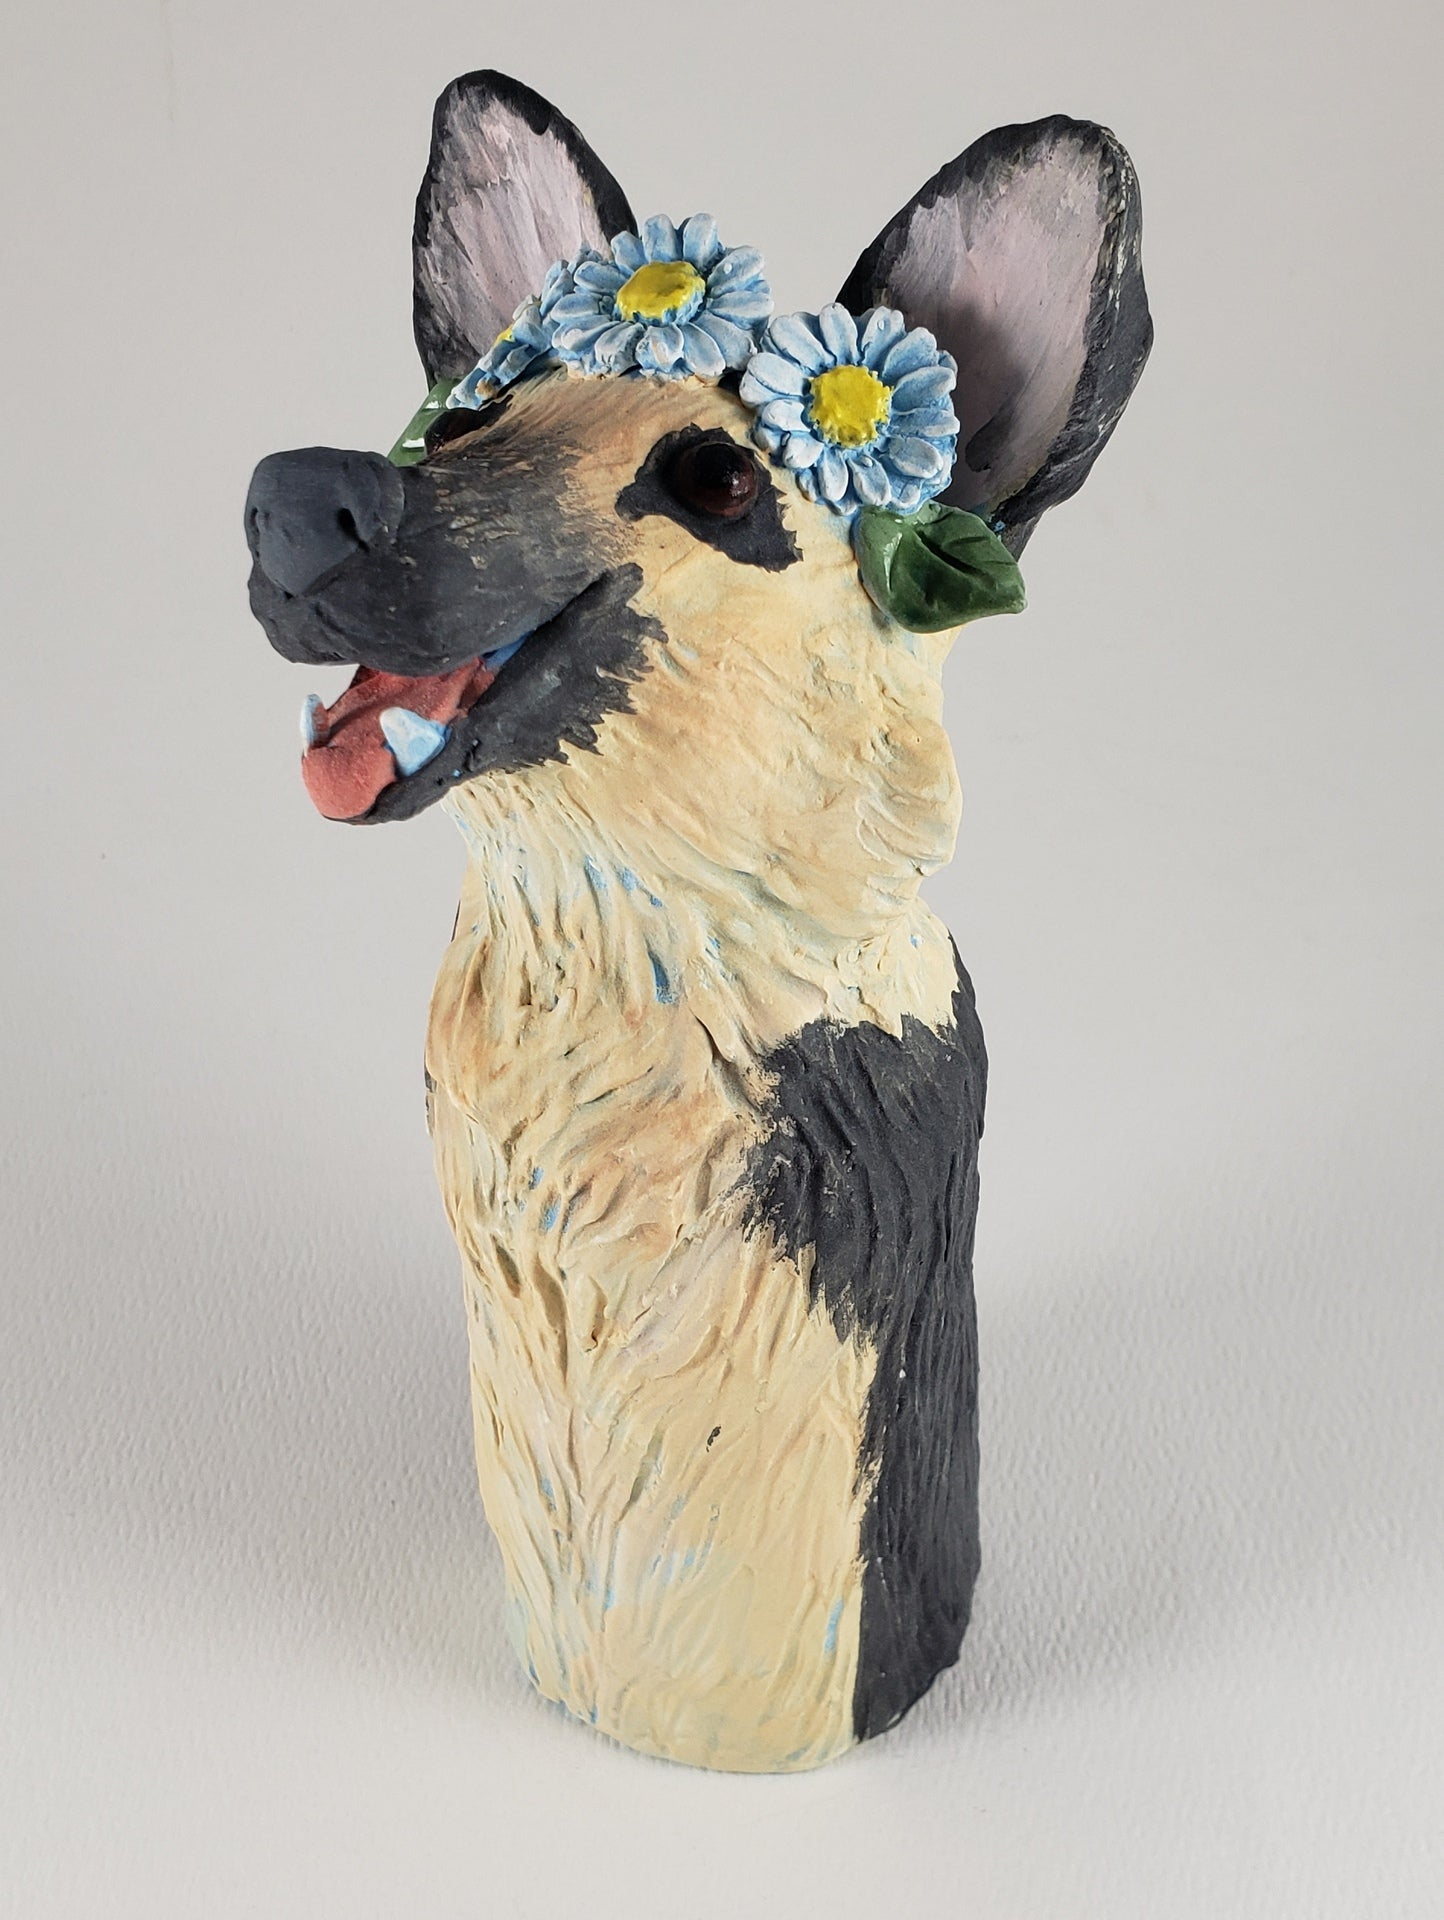 Rolff the German Shepherd Wears a Daisy Headband - Artworks by Karen Fincannon